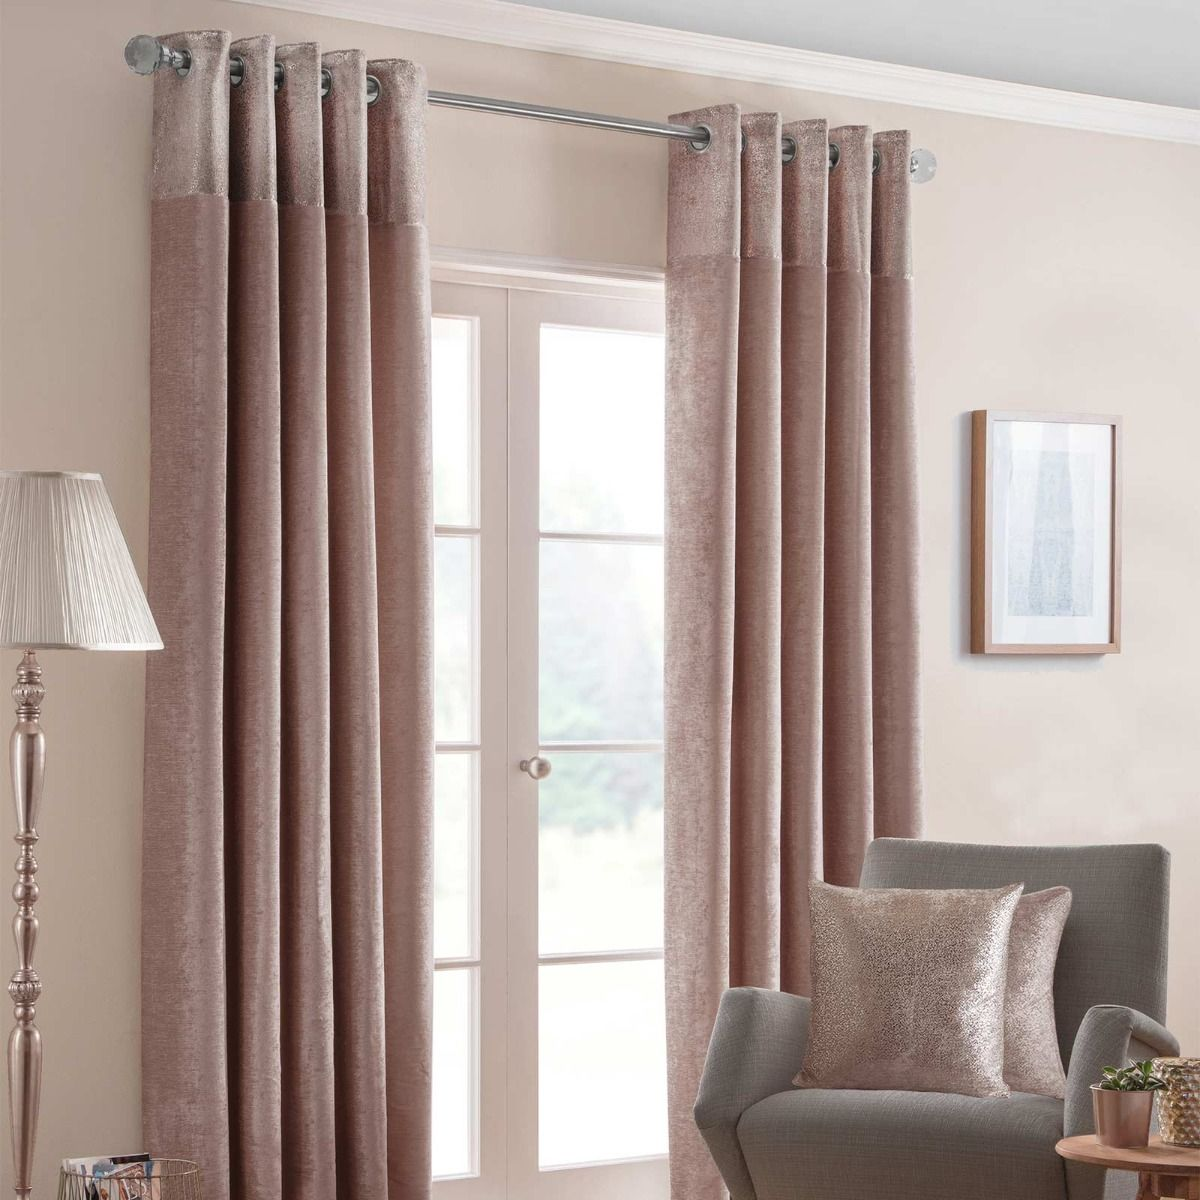 <p>Contemporary blush pink eyelet curtain pair in a chenille style fabric and foil banded top header for a glamourous look inside homes while blocking out sunlight.</p> <p><strong>Pink Eyelet Curtains</strong></p> <p>Glamourous and soft, these subtle pink curtains are perfect for adding charm and sophistication to interiors. With a beautiful foil printed banner, this curtain pair will help transform living rooms. Perfect for blocking out sunlight and reducing draft, these curtains can also help